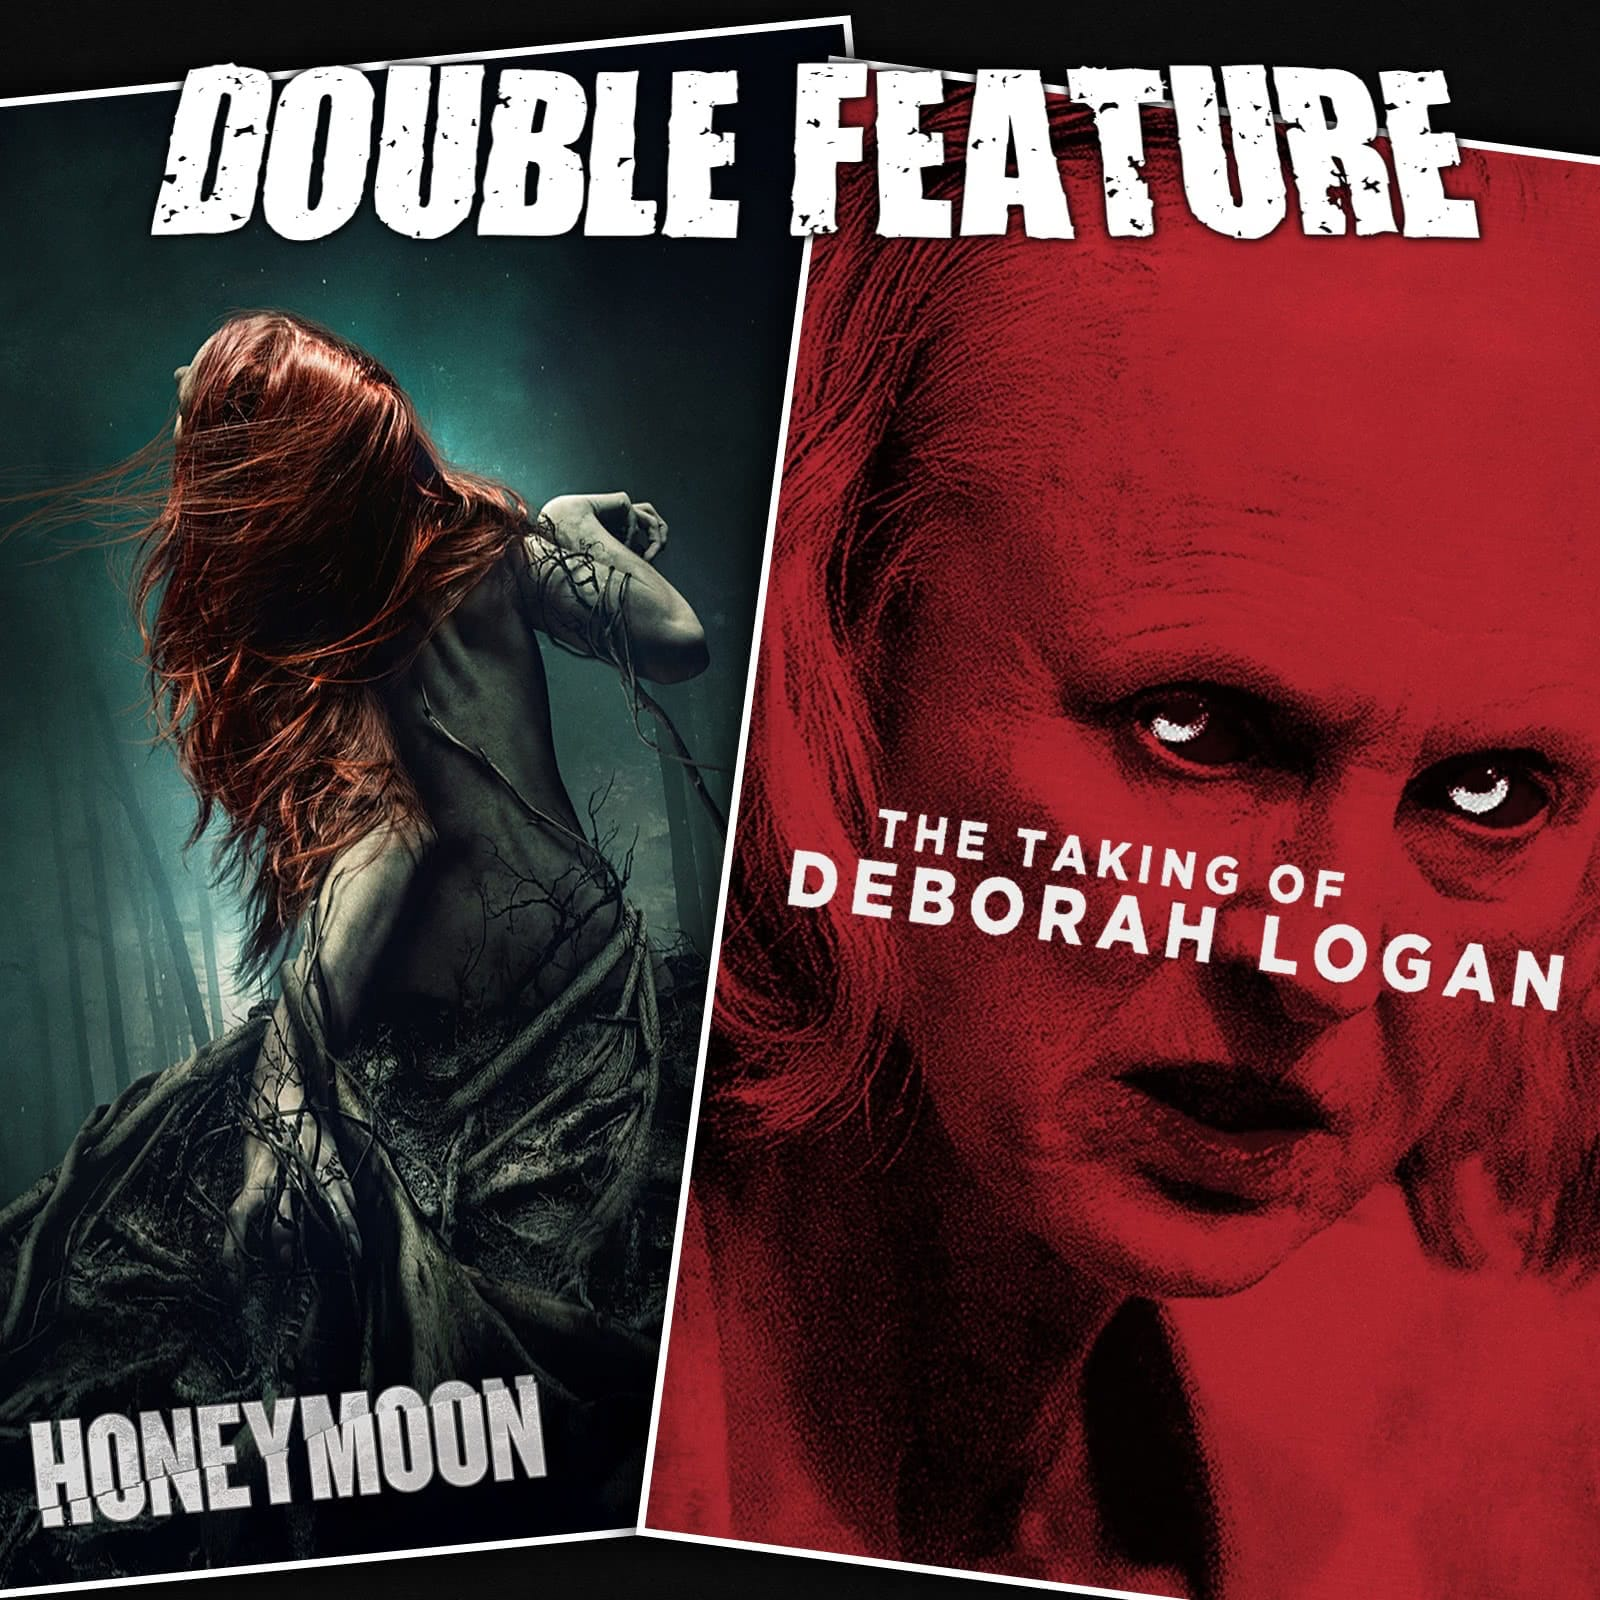 Honeymoon + The Taking Of Deborah Logan